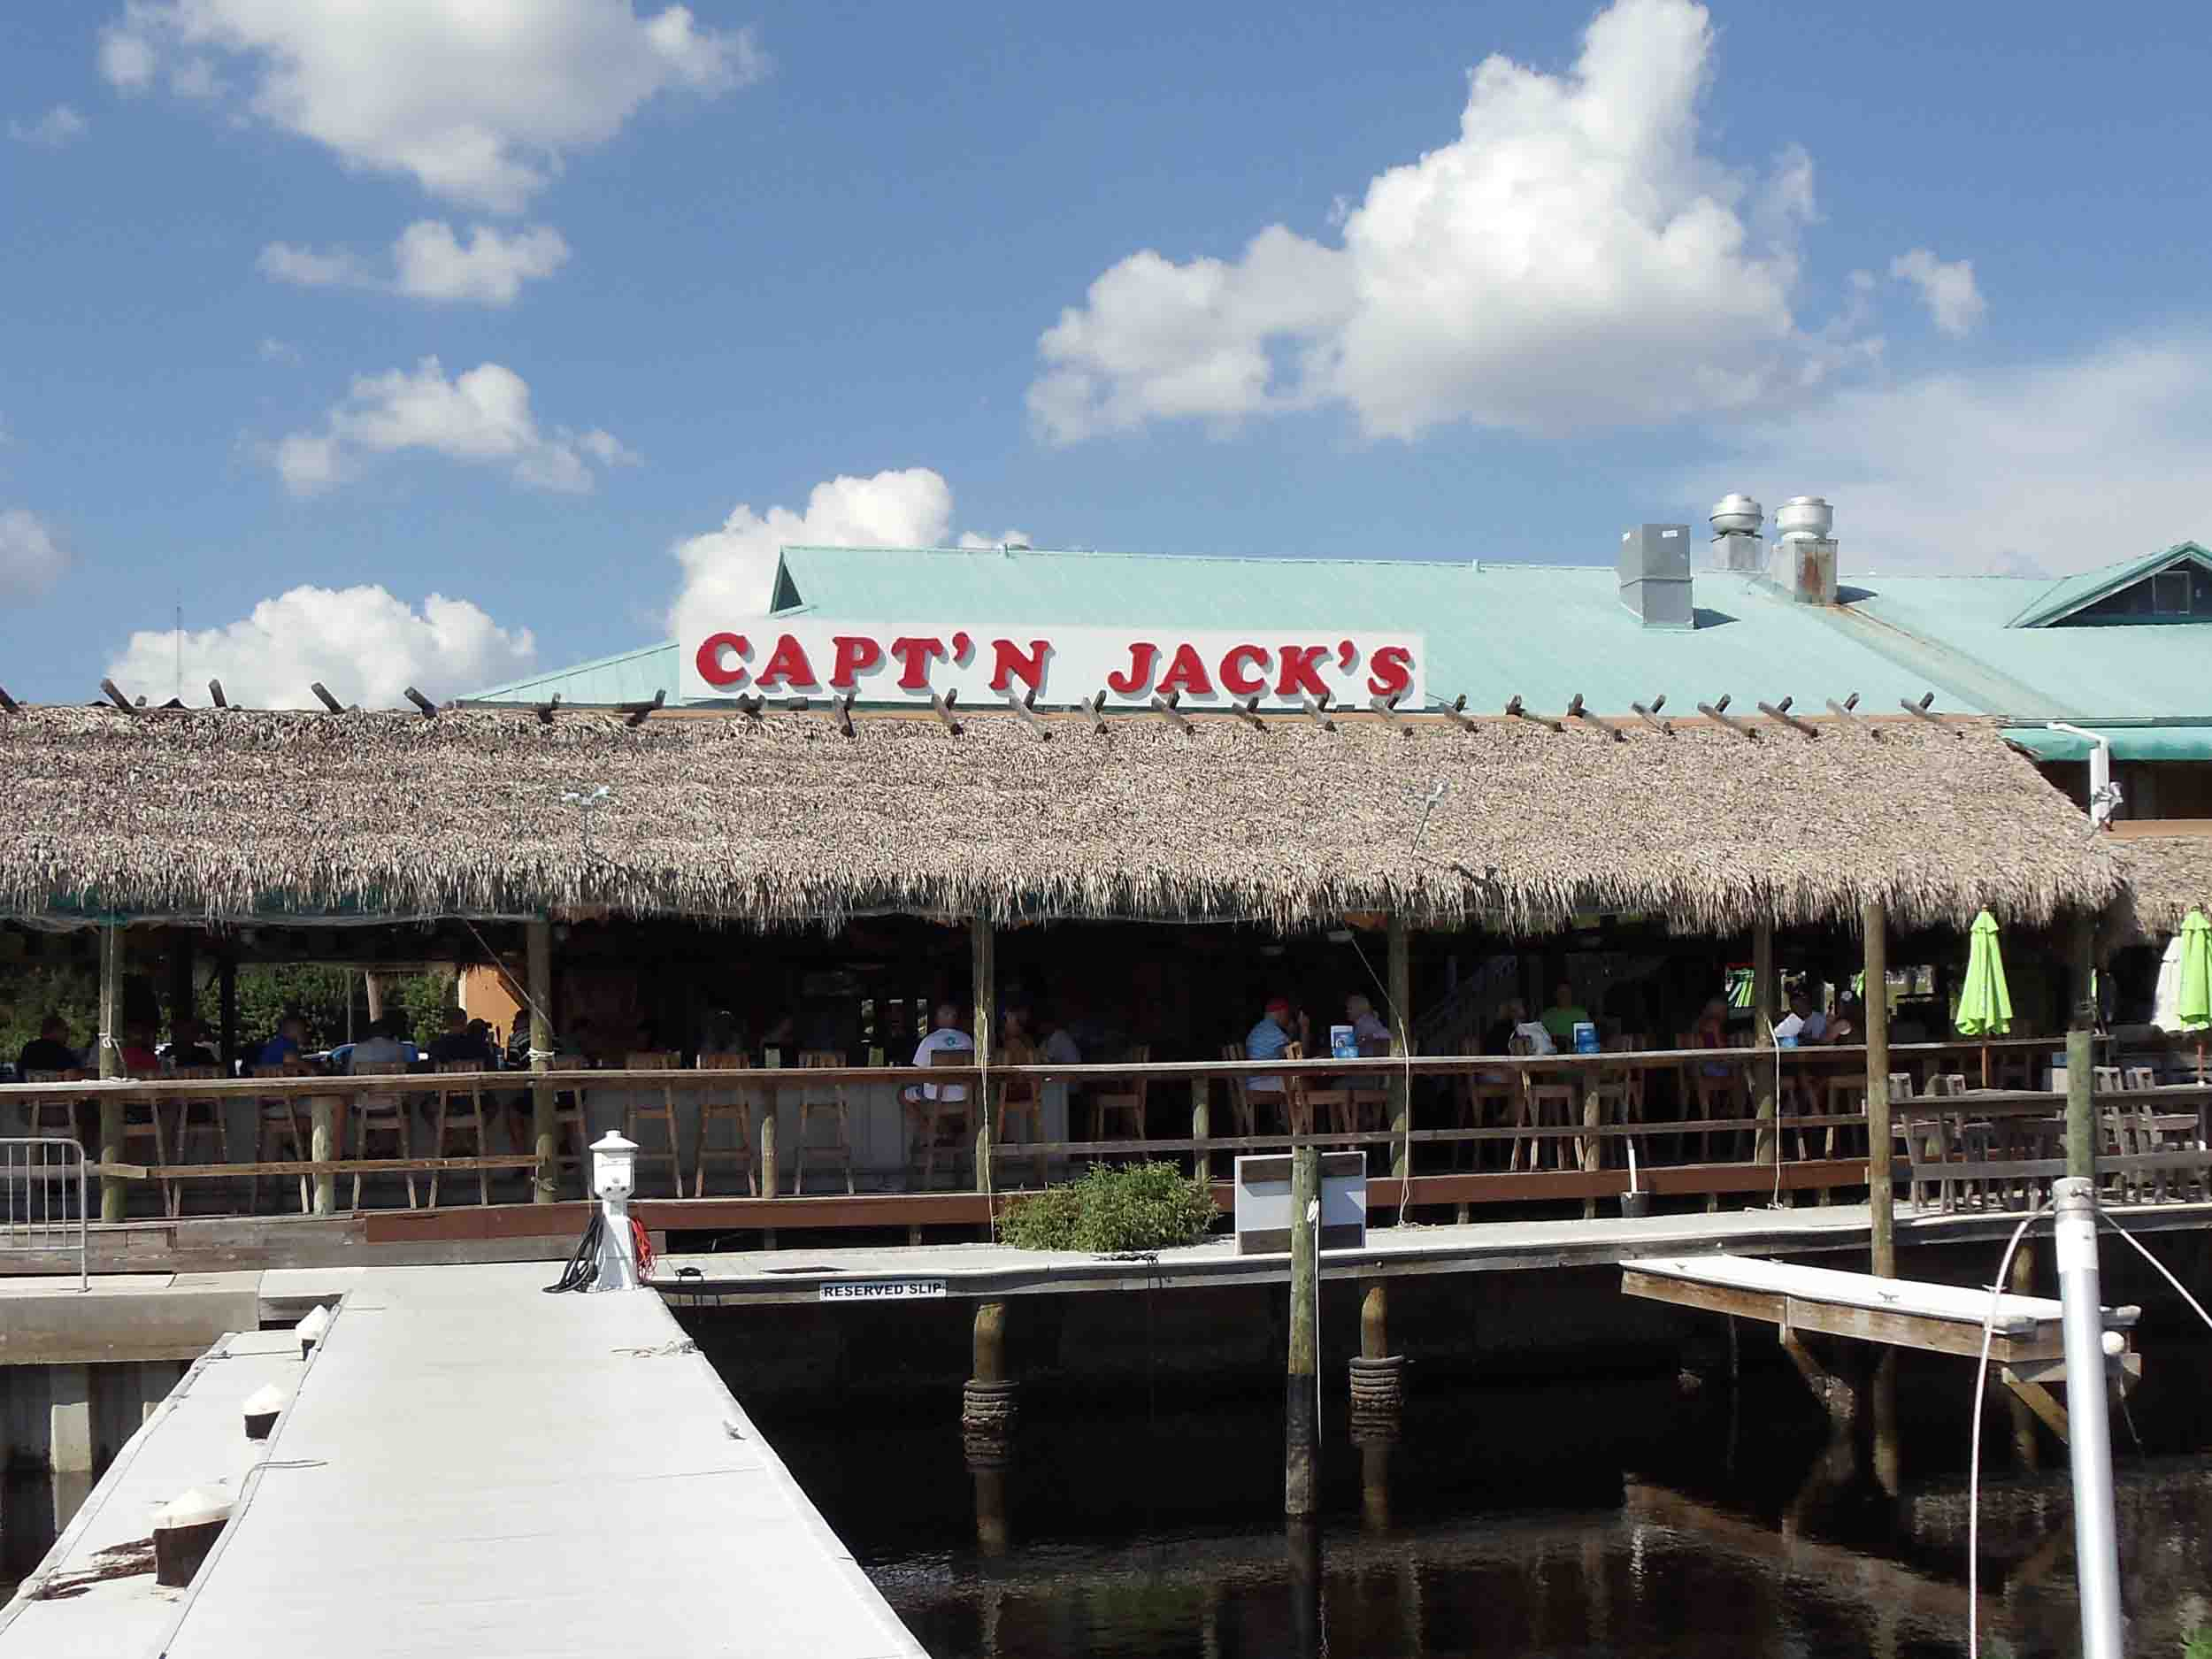 Capt'n Jack's Bar and Grill Exterior